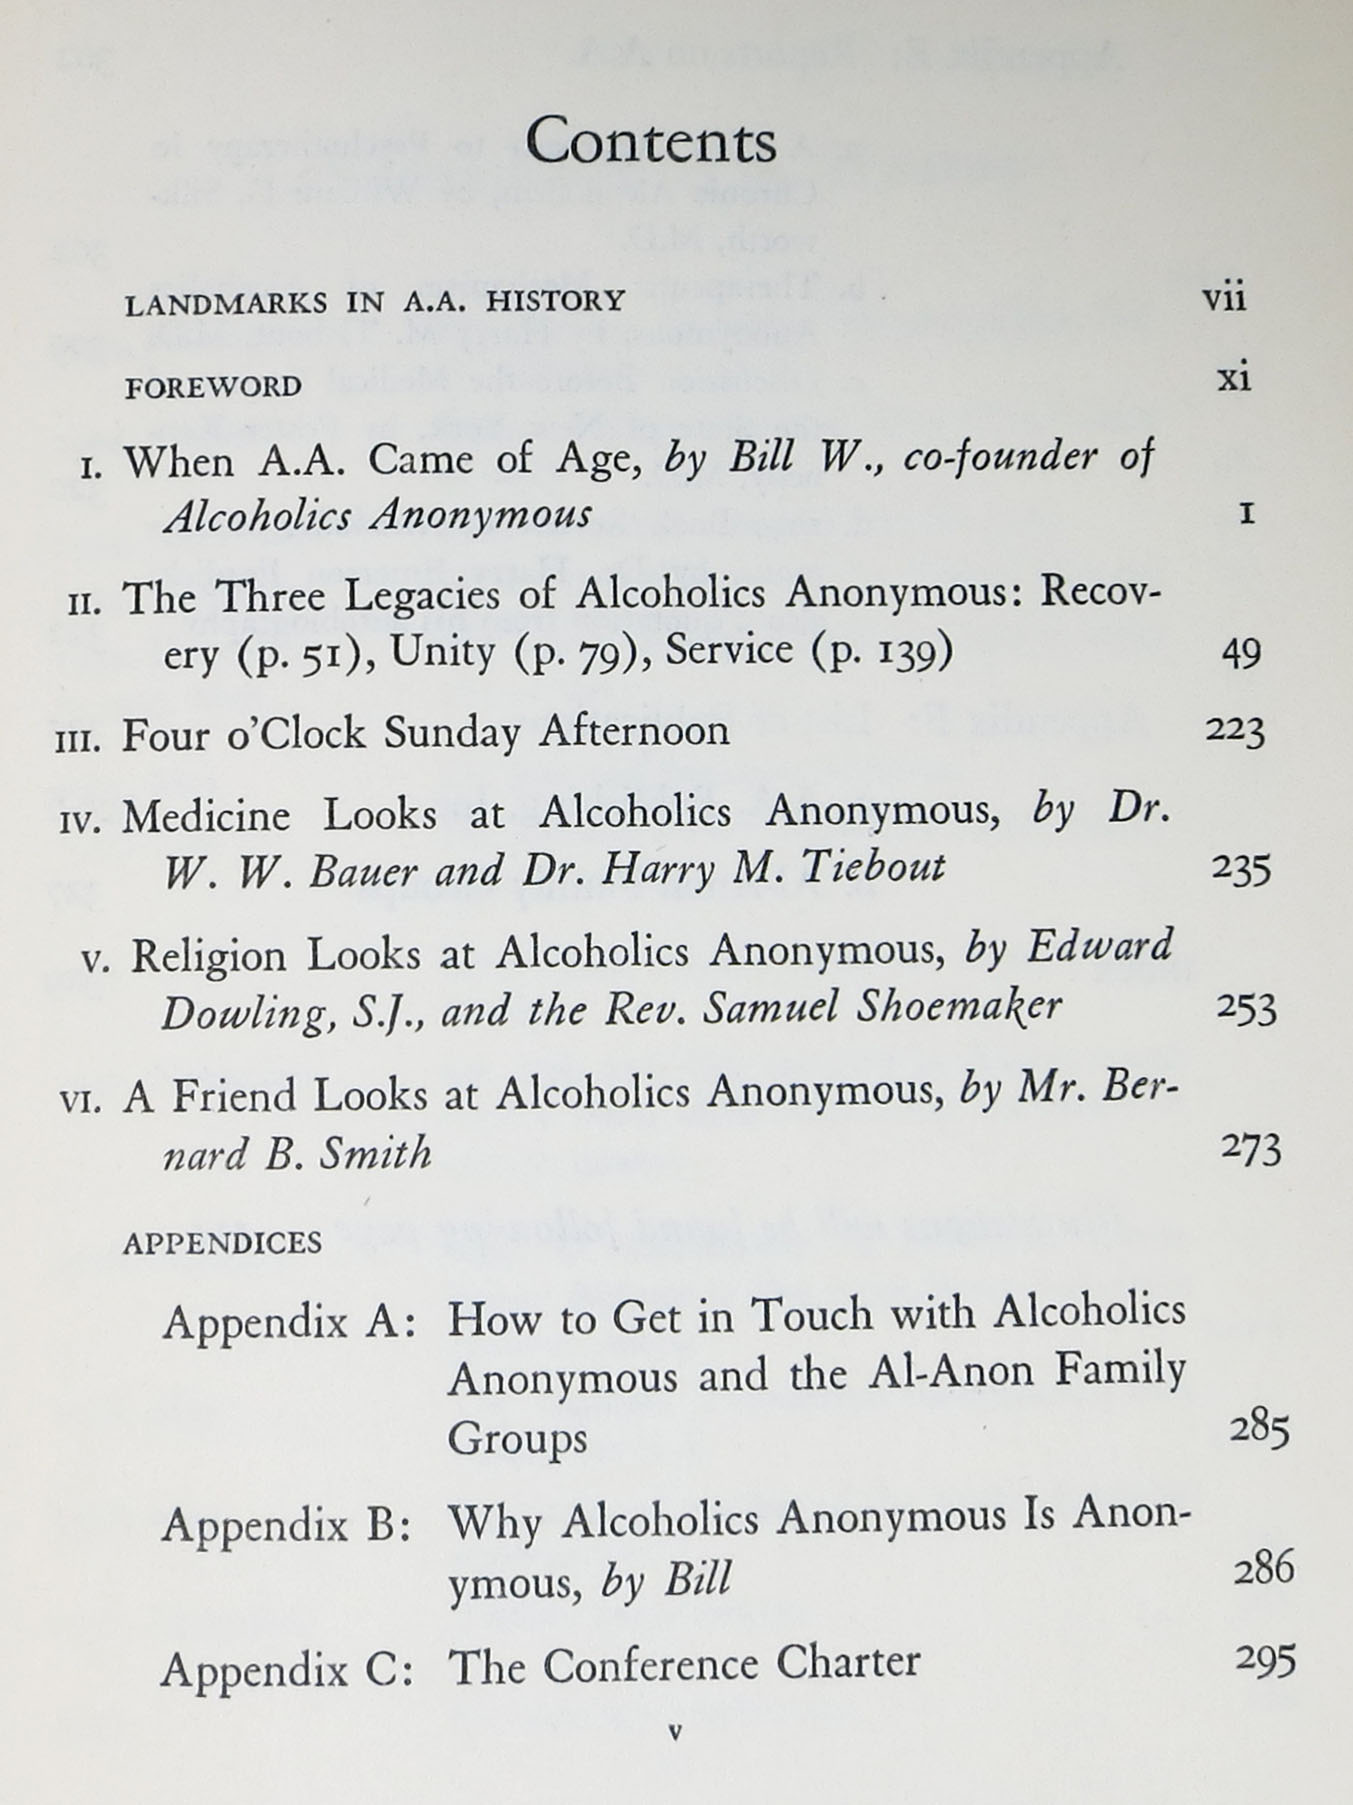 ALCOHOLICS ANONYMOUS COMES Of AGE  A Brief History of A A  by Bill -  Co-Founder Wilson, 1895 - 1971 on Tavistock Books